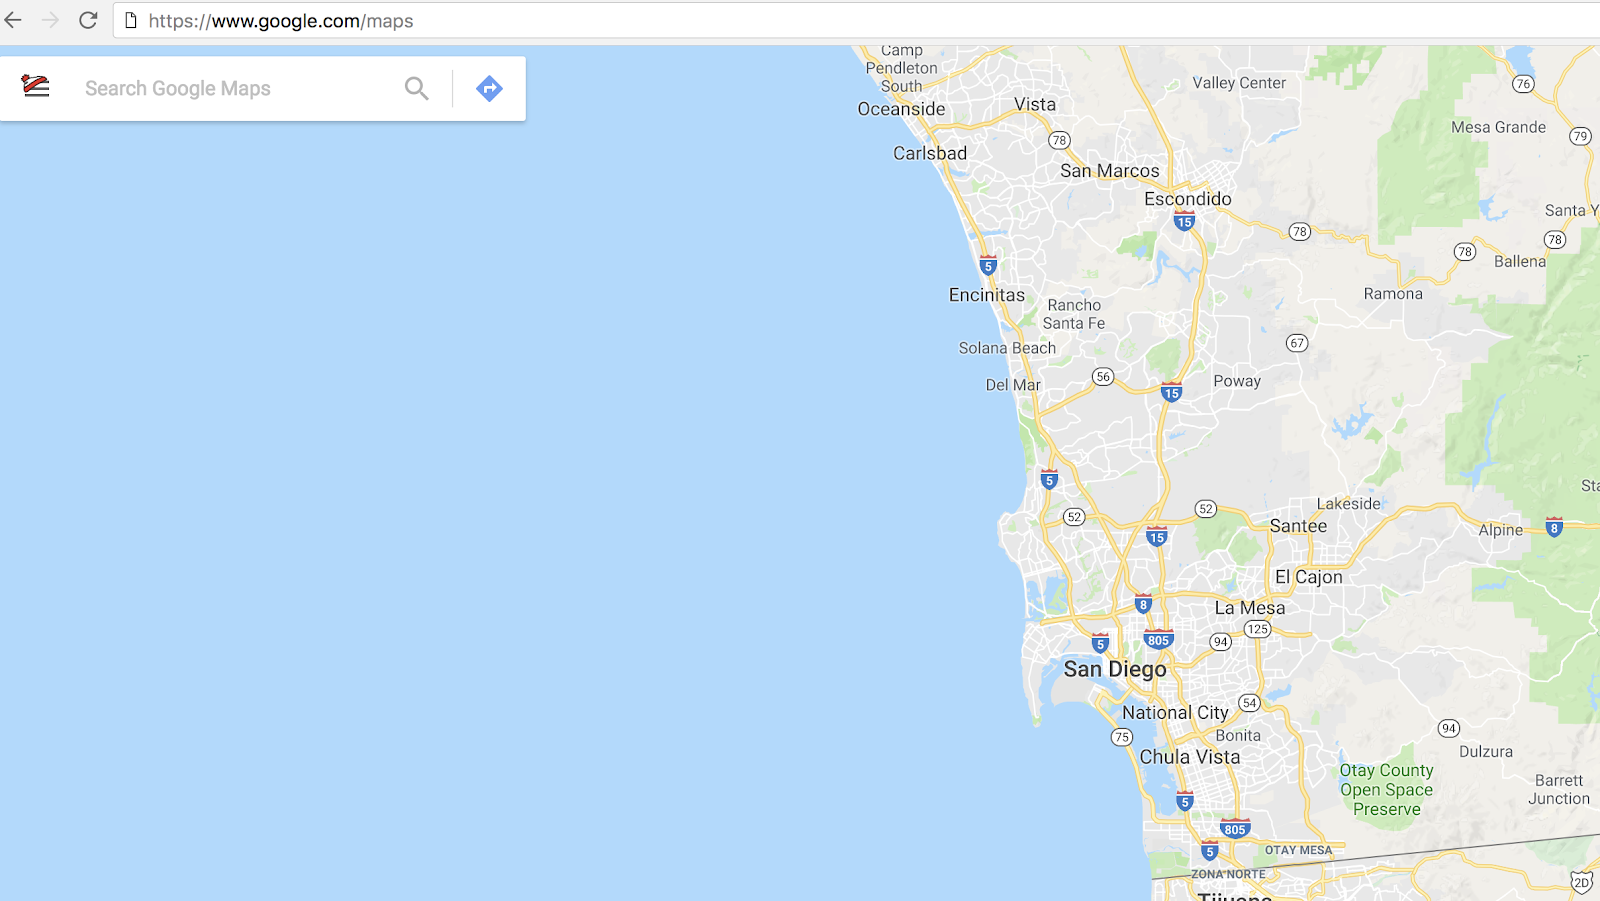 How to claim a business on Google using google maps